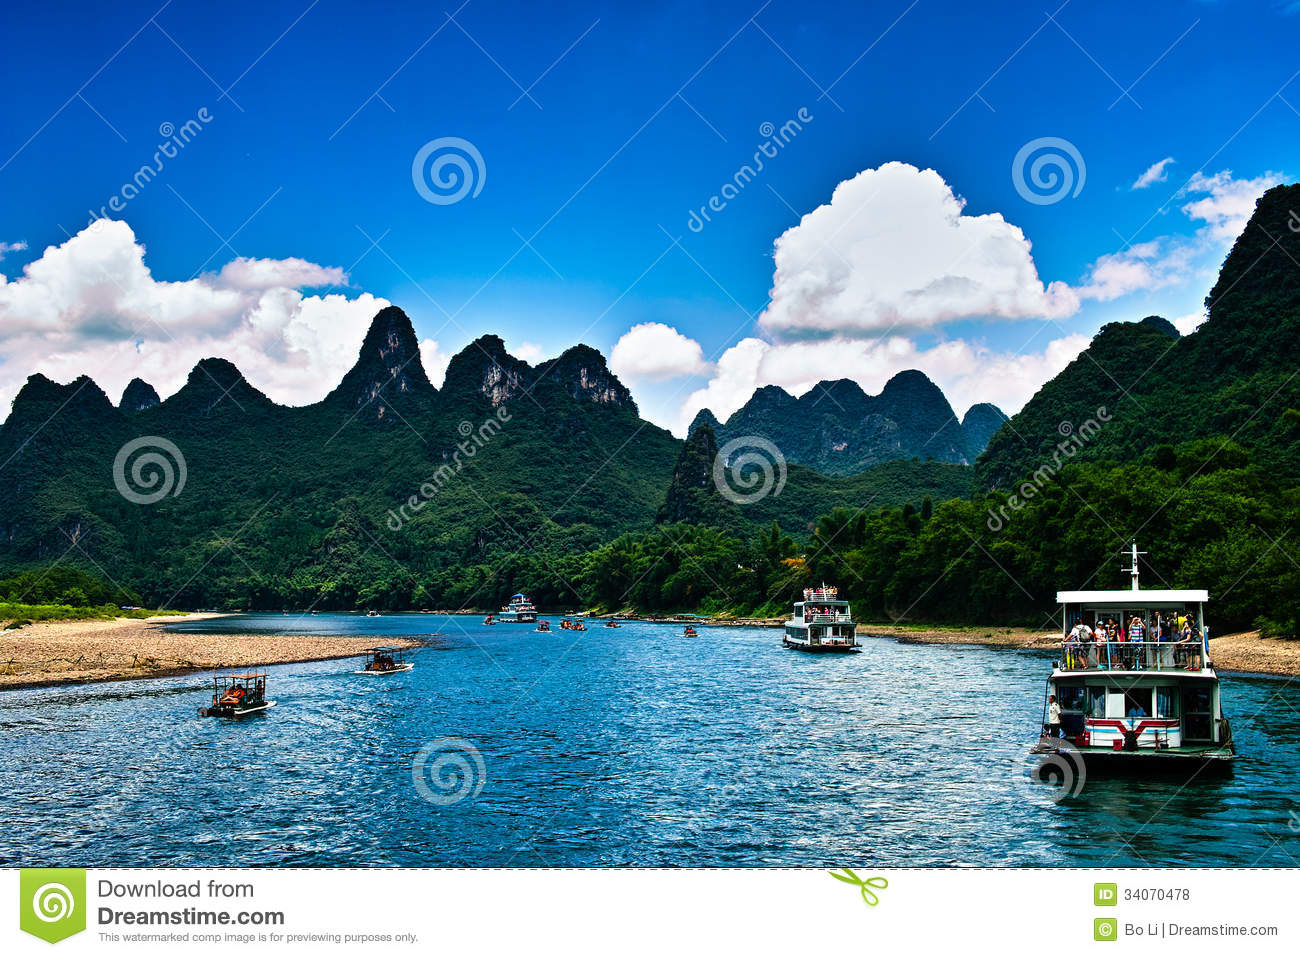 The boat trip on the lijiang river in holiday